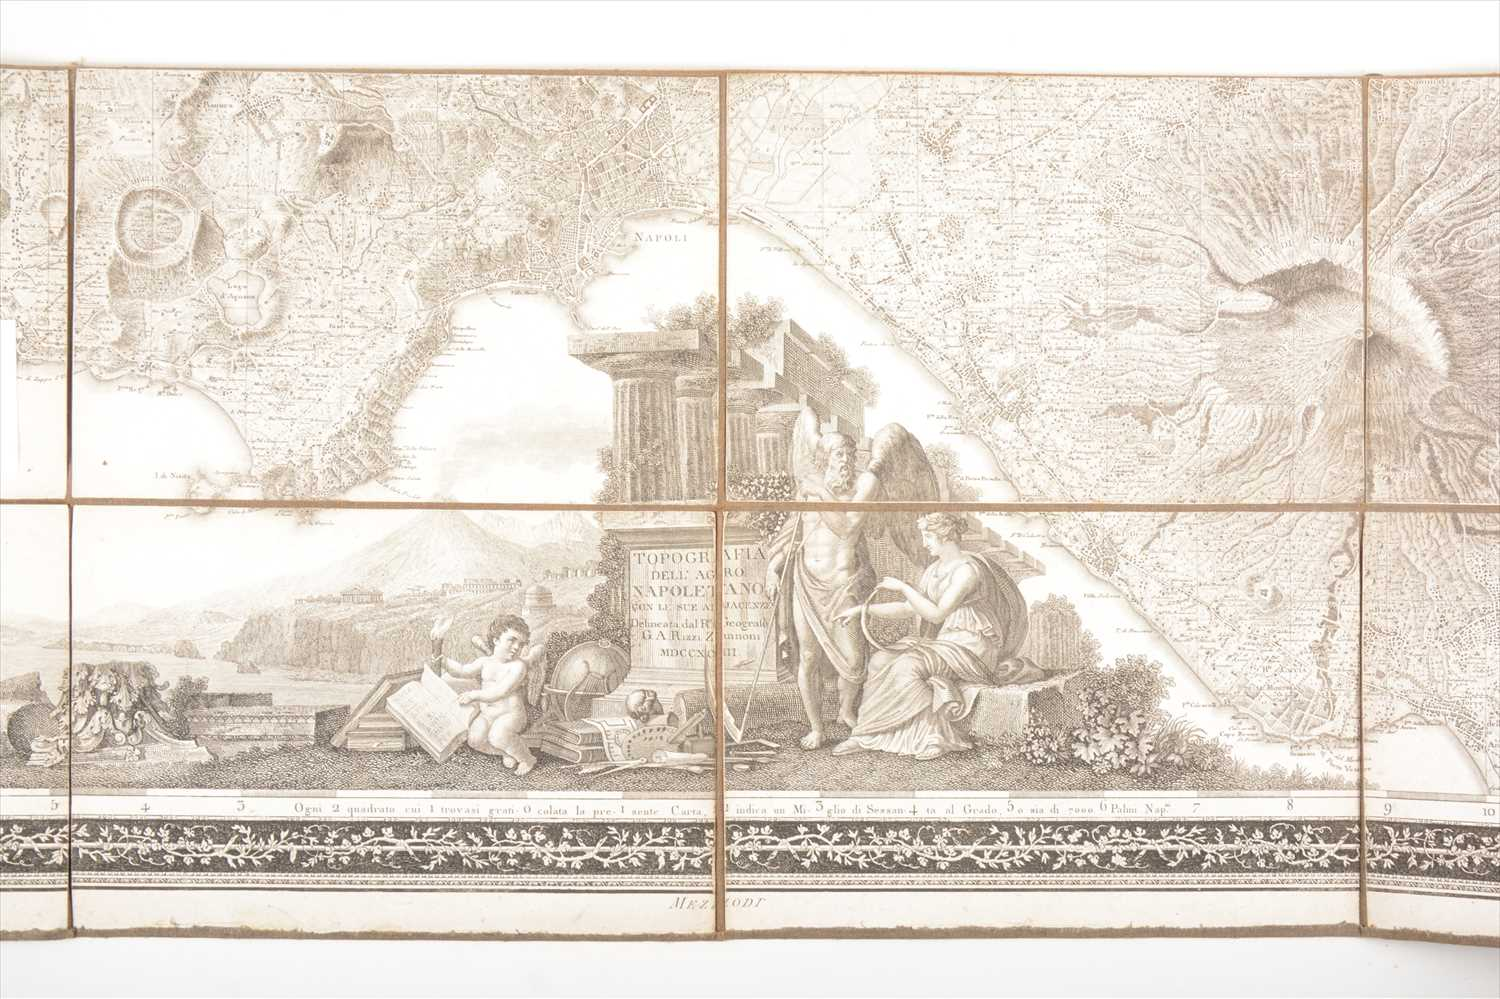 Lot 545-Rizzi Zannoni, Topografica Dell' Agro Napoletano, 1793, and other maps